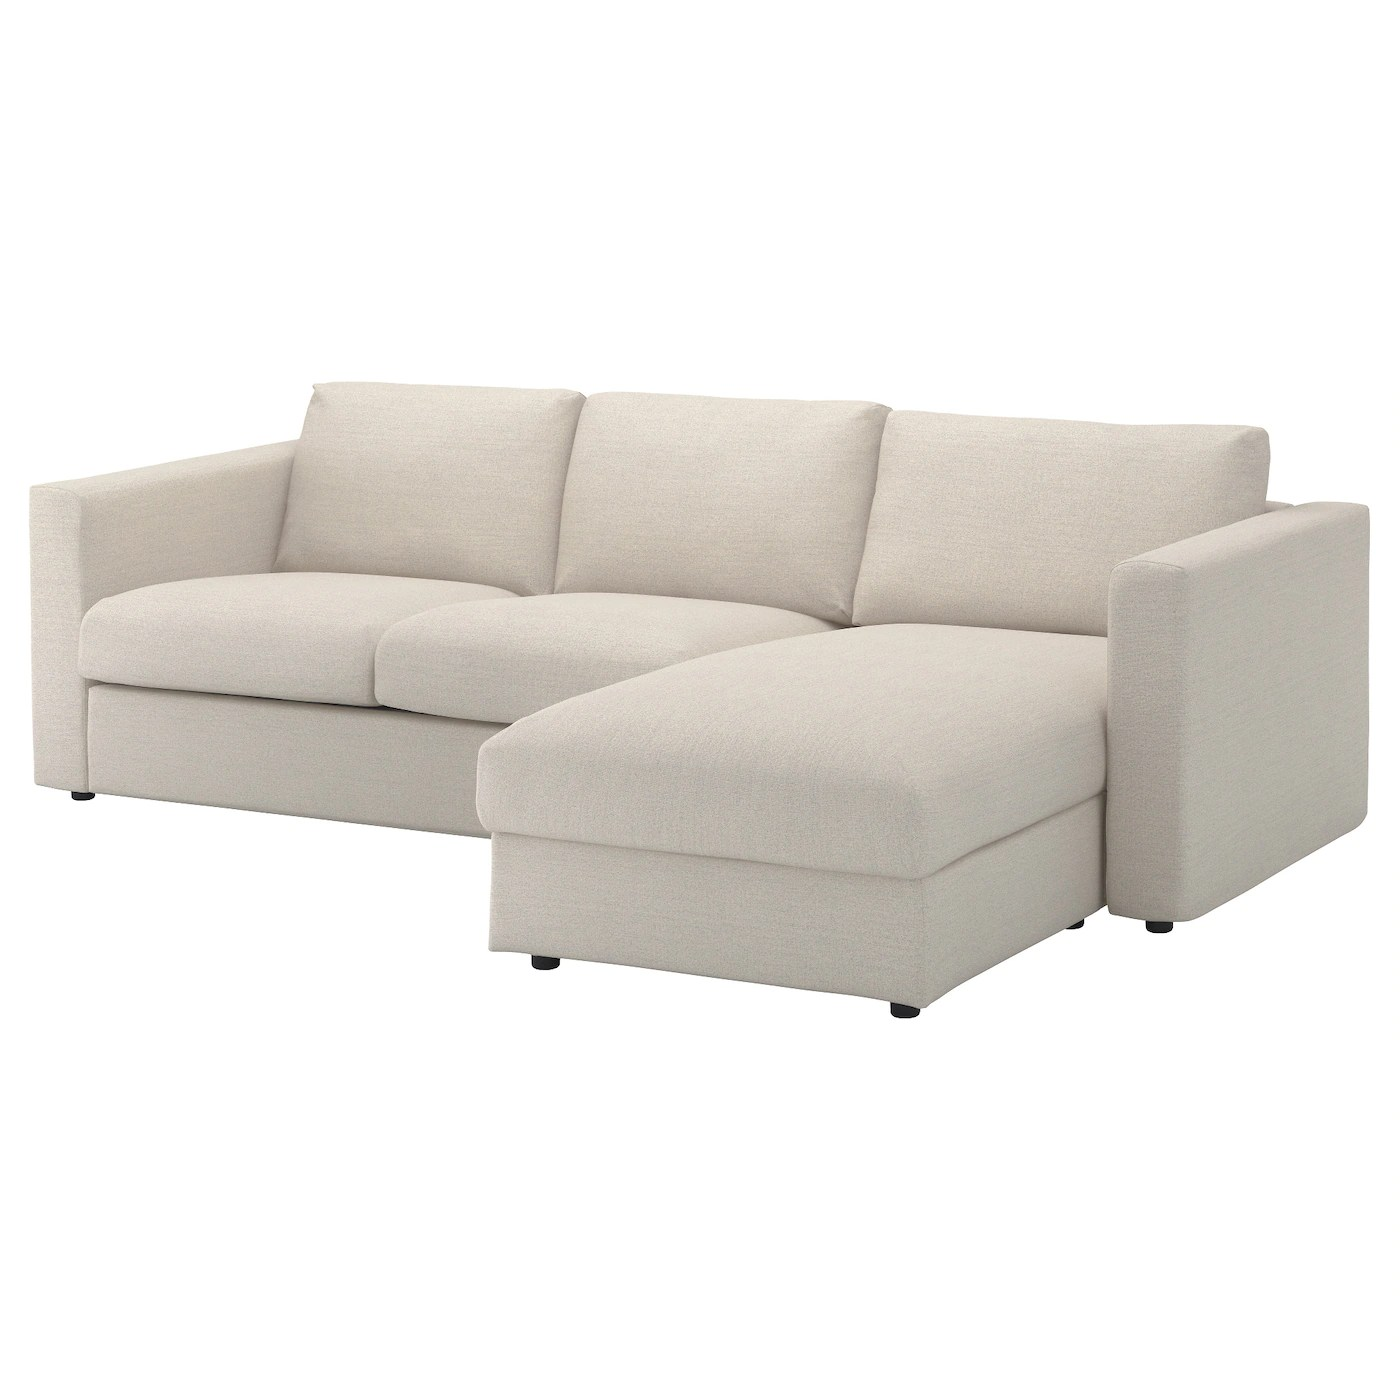 Ikea Bettwäsche Beige Vimle 3 Seat Sofa With Chaise Longue Gunnared Beige Ikea